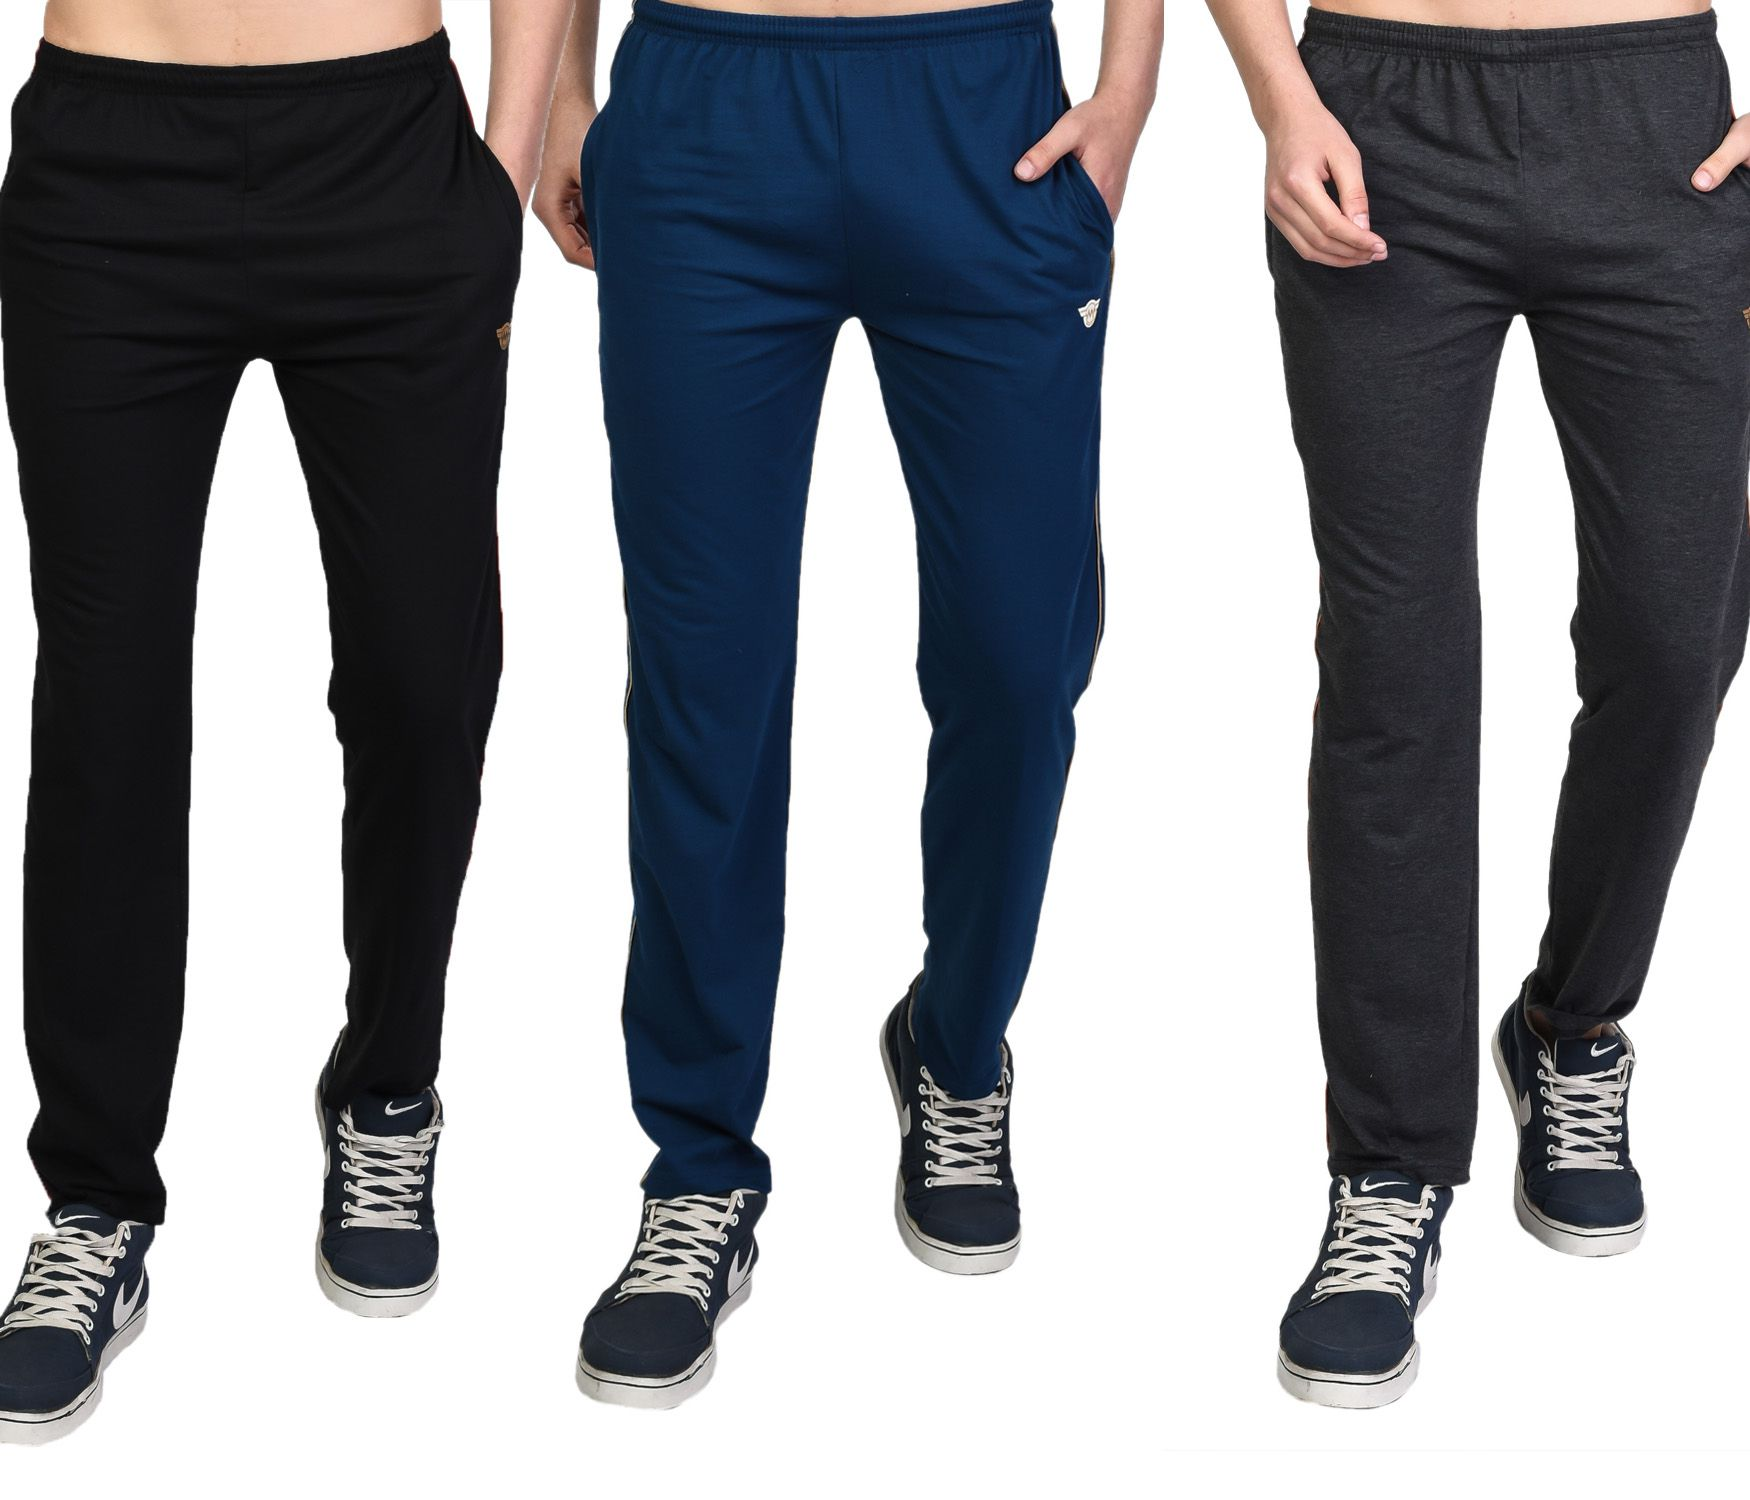 White Moon Multi Cotton Blend Trackpants Pack of 3